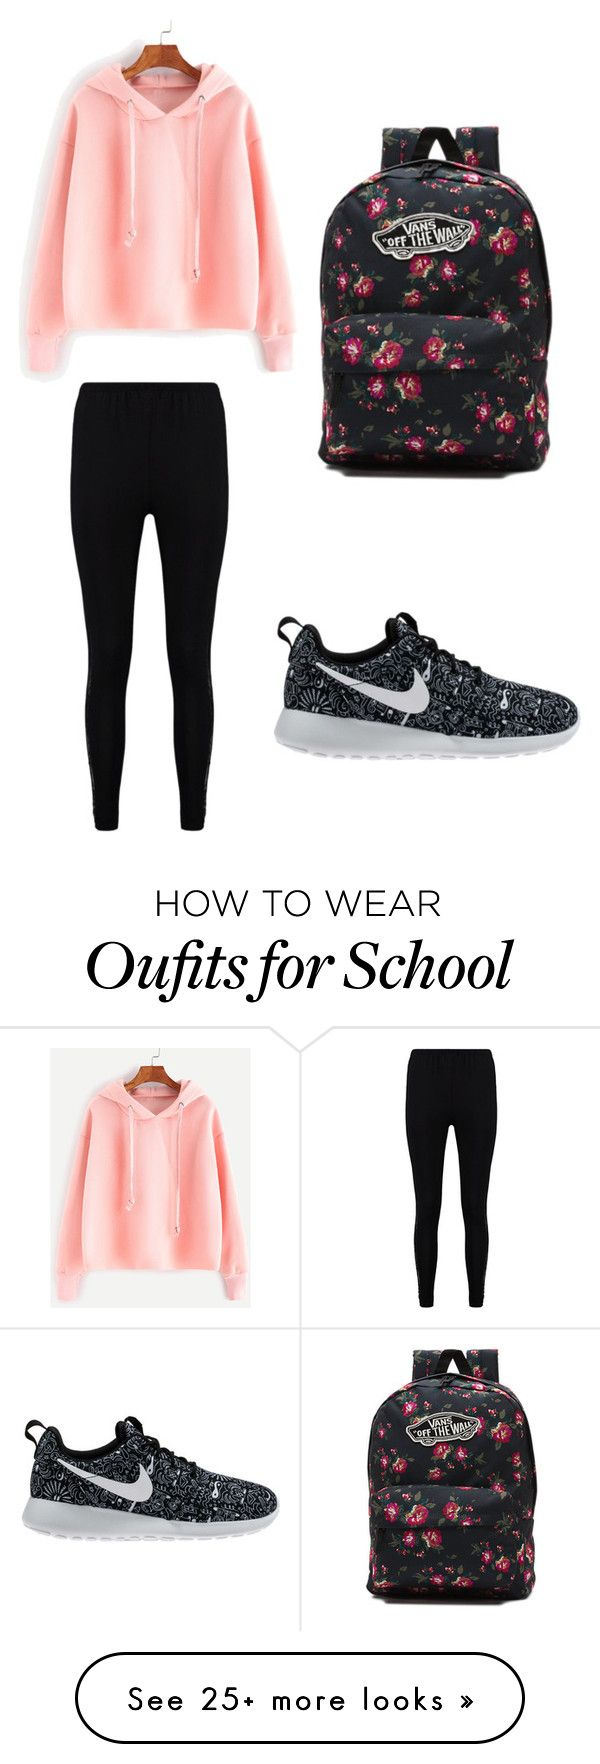 """school casual"" by pendletonanashia on Polyvore featuring Boohoo, NIKE and Vans"